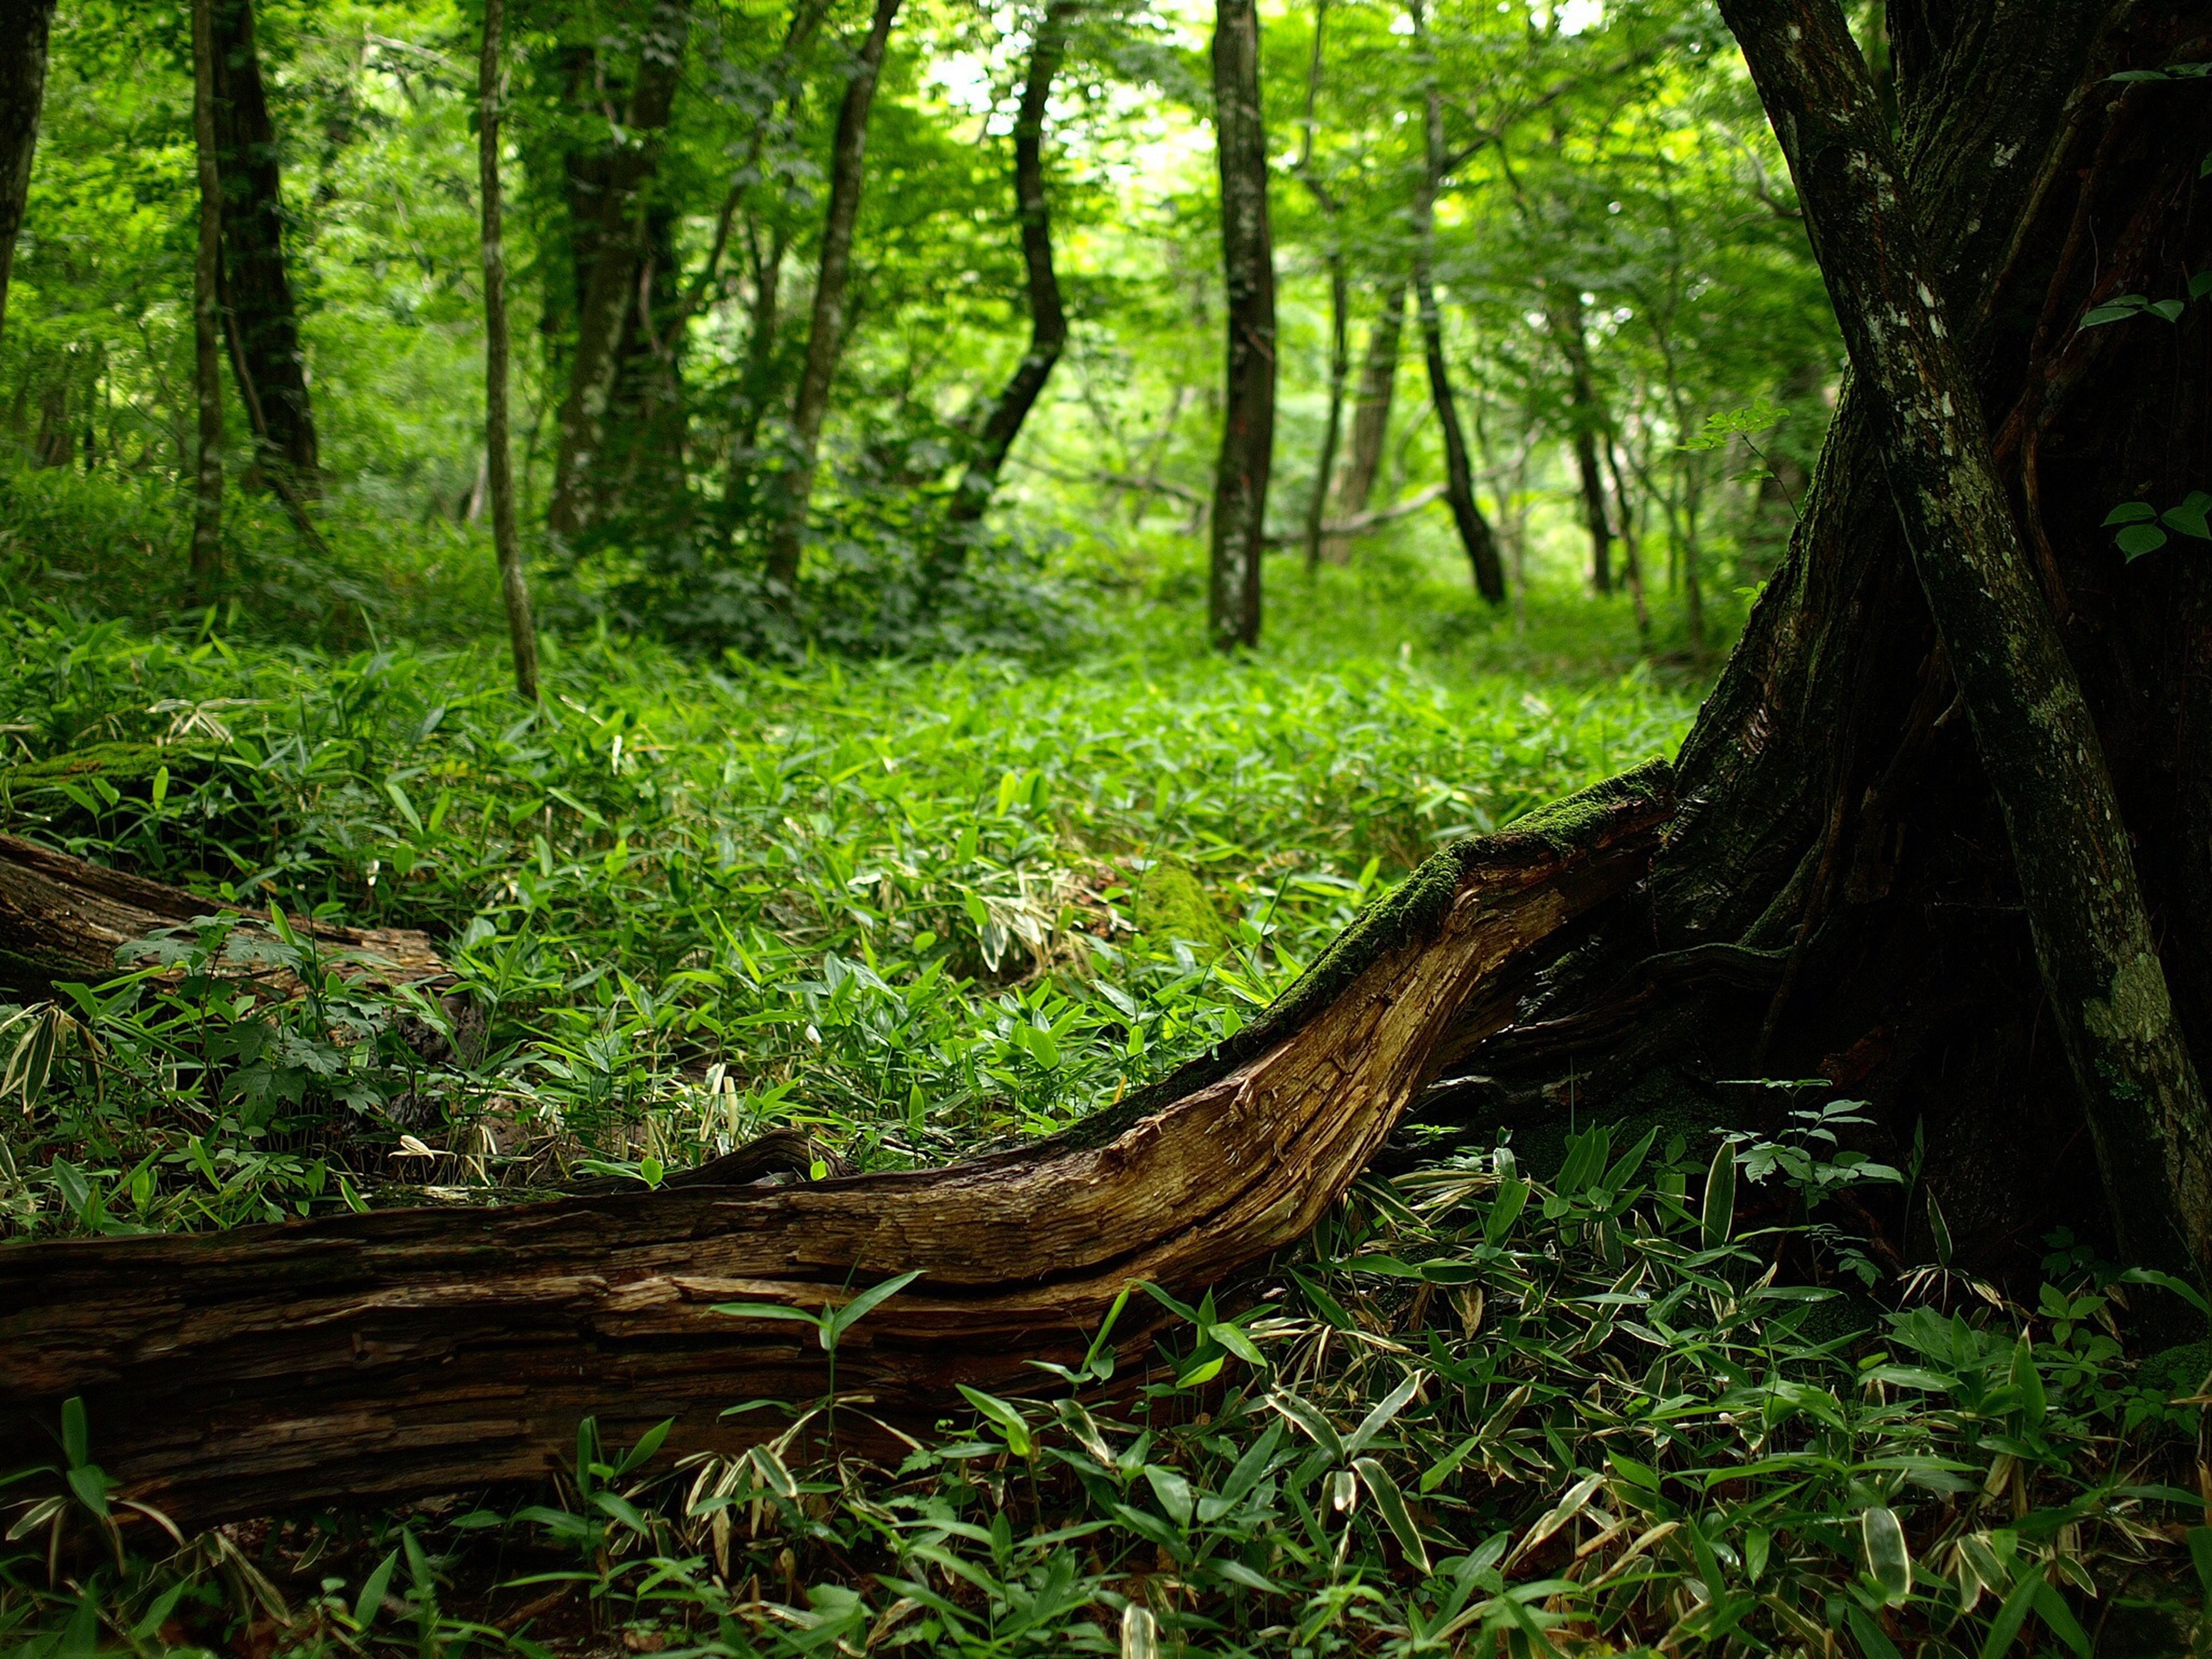 tree, forest, tree trunk, growth, woodland, tranquility, green color, nature, grass, tranquil scene, beauty in nature, wood - material, landscape, woods, lush foliage, non-urban scene, day, plant, outdoors, no people